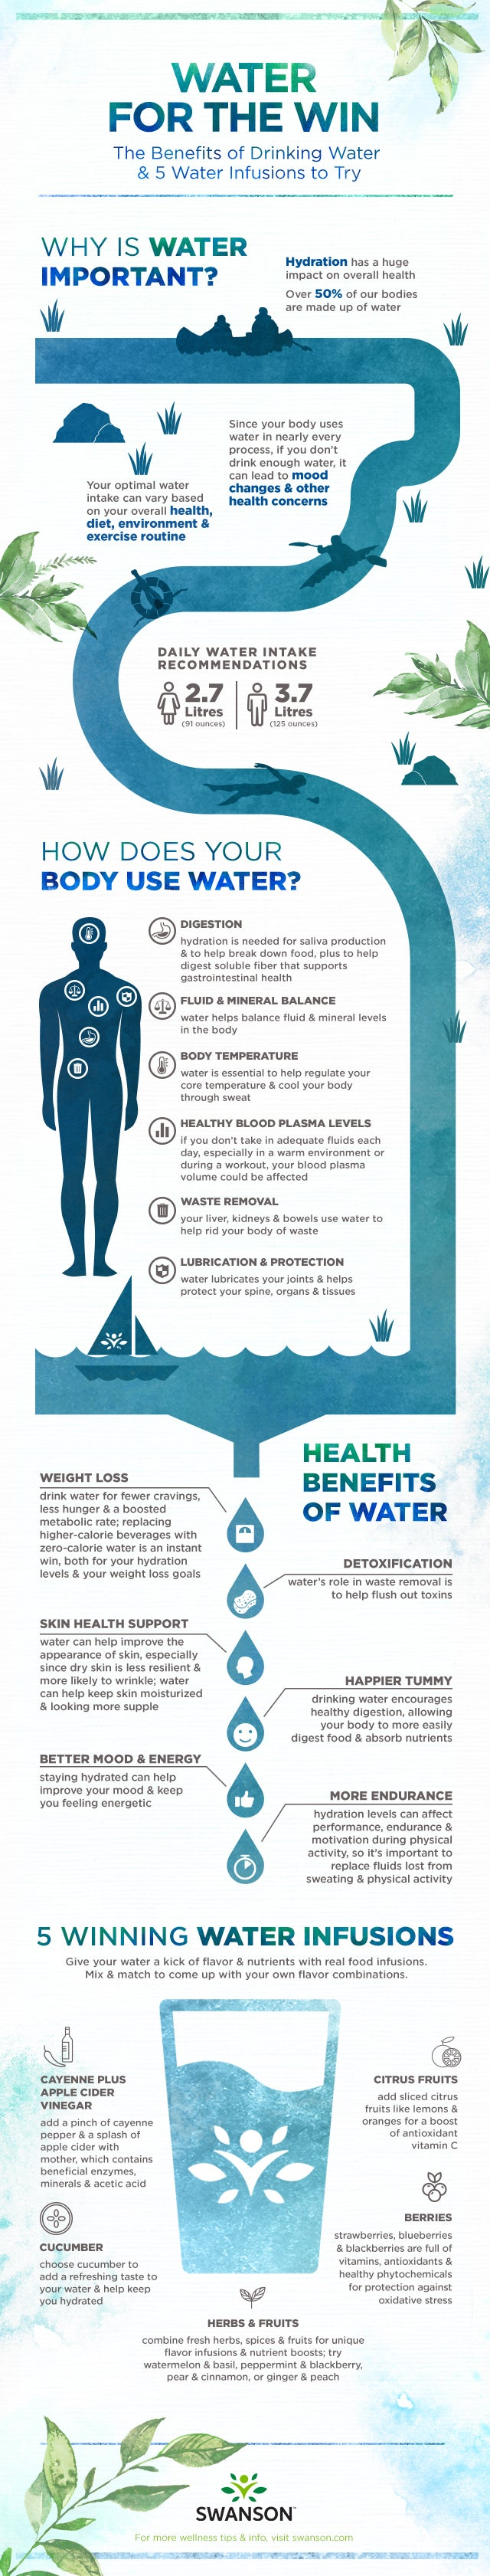 Water for the Win Infographic